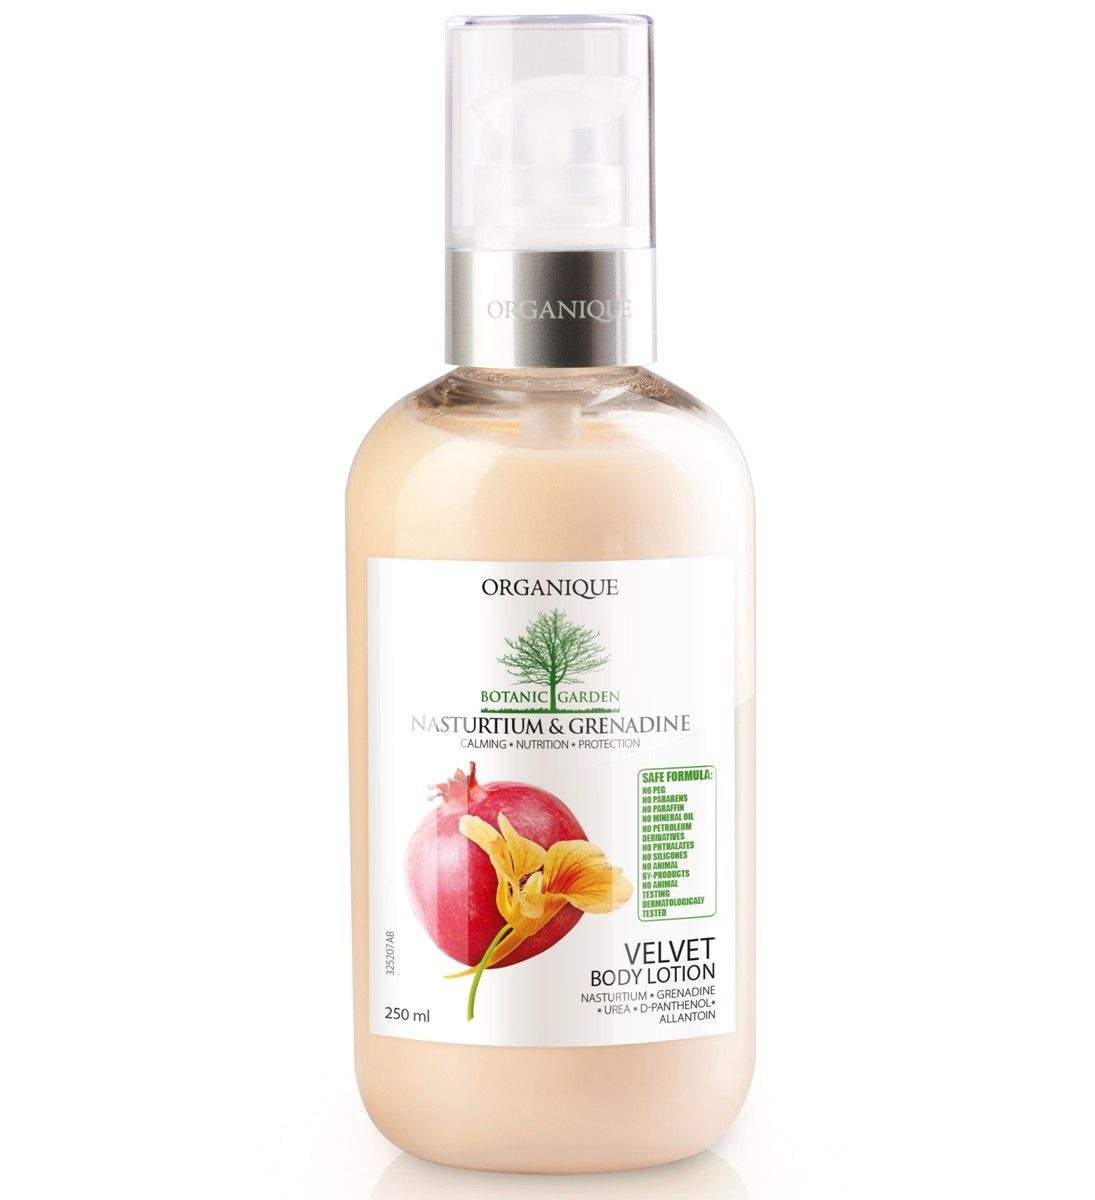 nasturium grenadine velvet body lotion